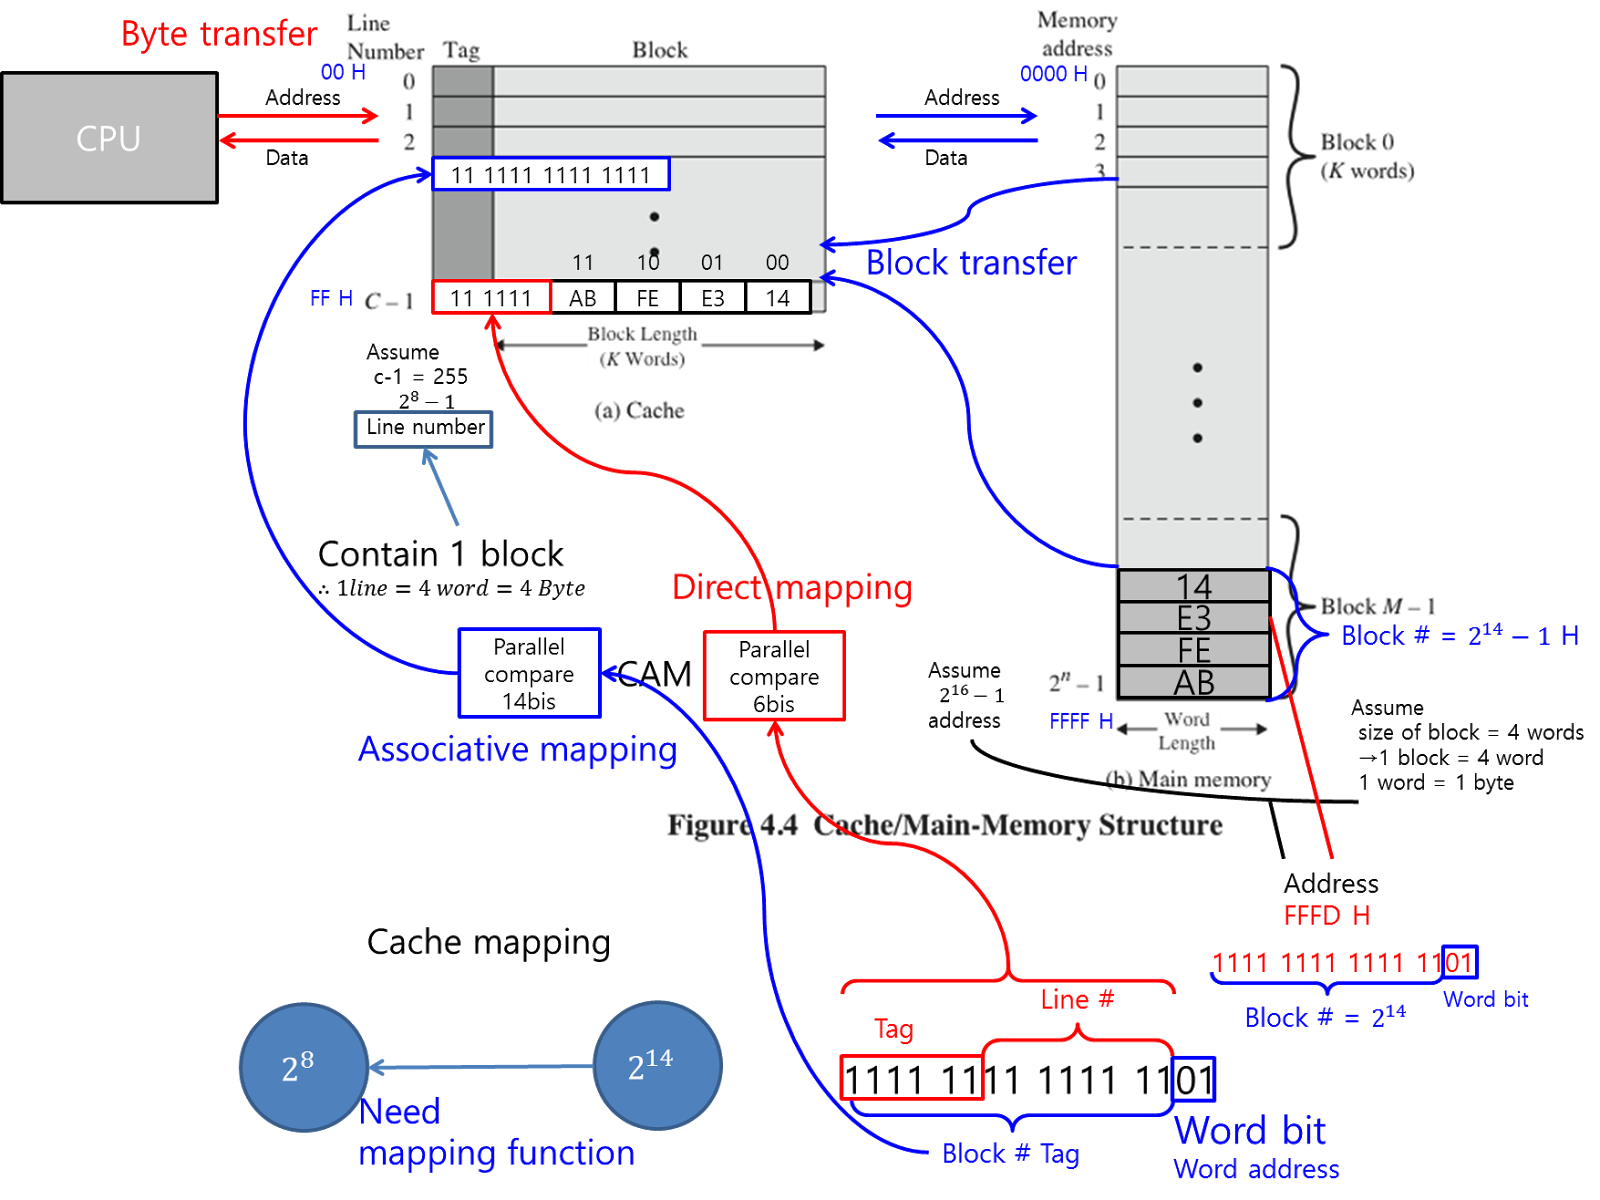 memory hierarchy diagram fetal pig spinal cord akpil 39s programming story computer architecture chap4